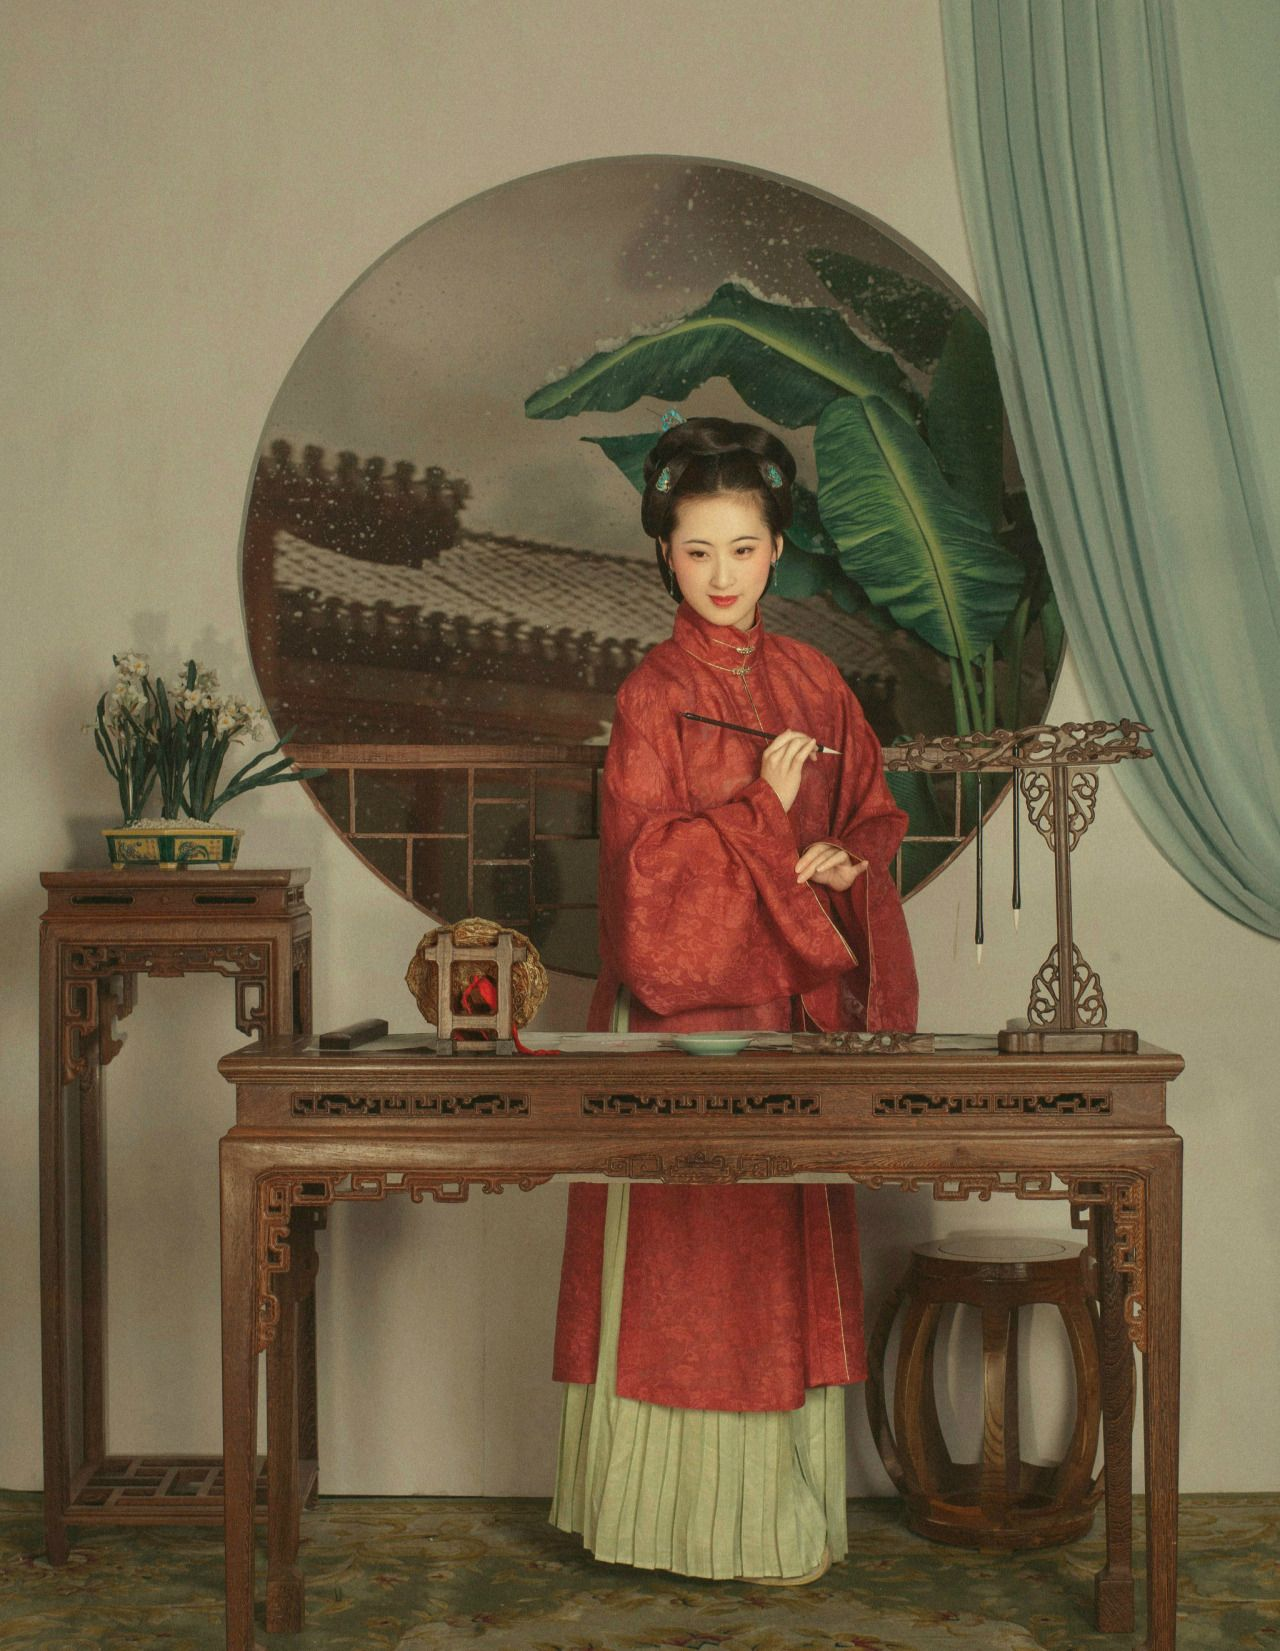 Traditional Chinese fashion in Ming dynasty style. Photo 潤熙陳 | Clothes 擷秀